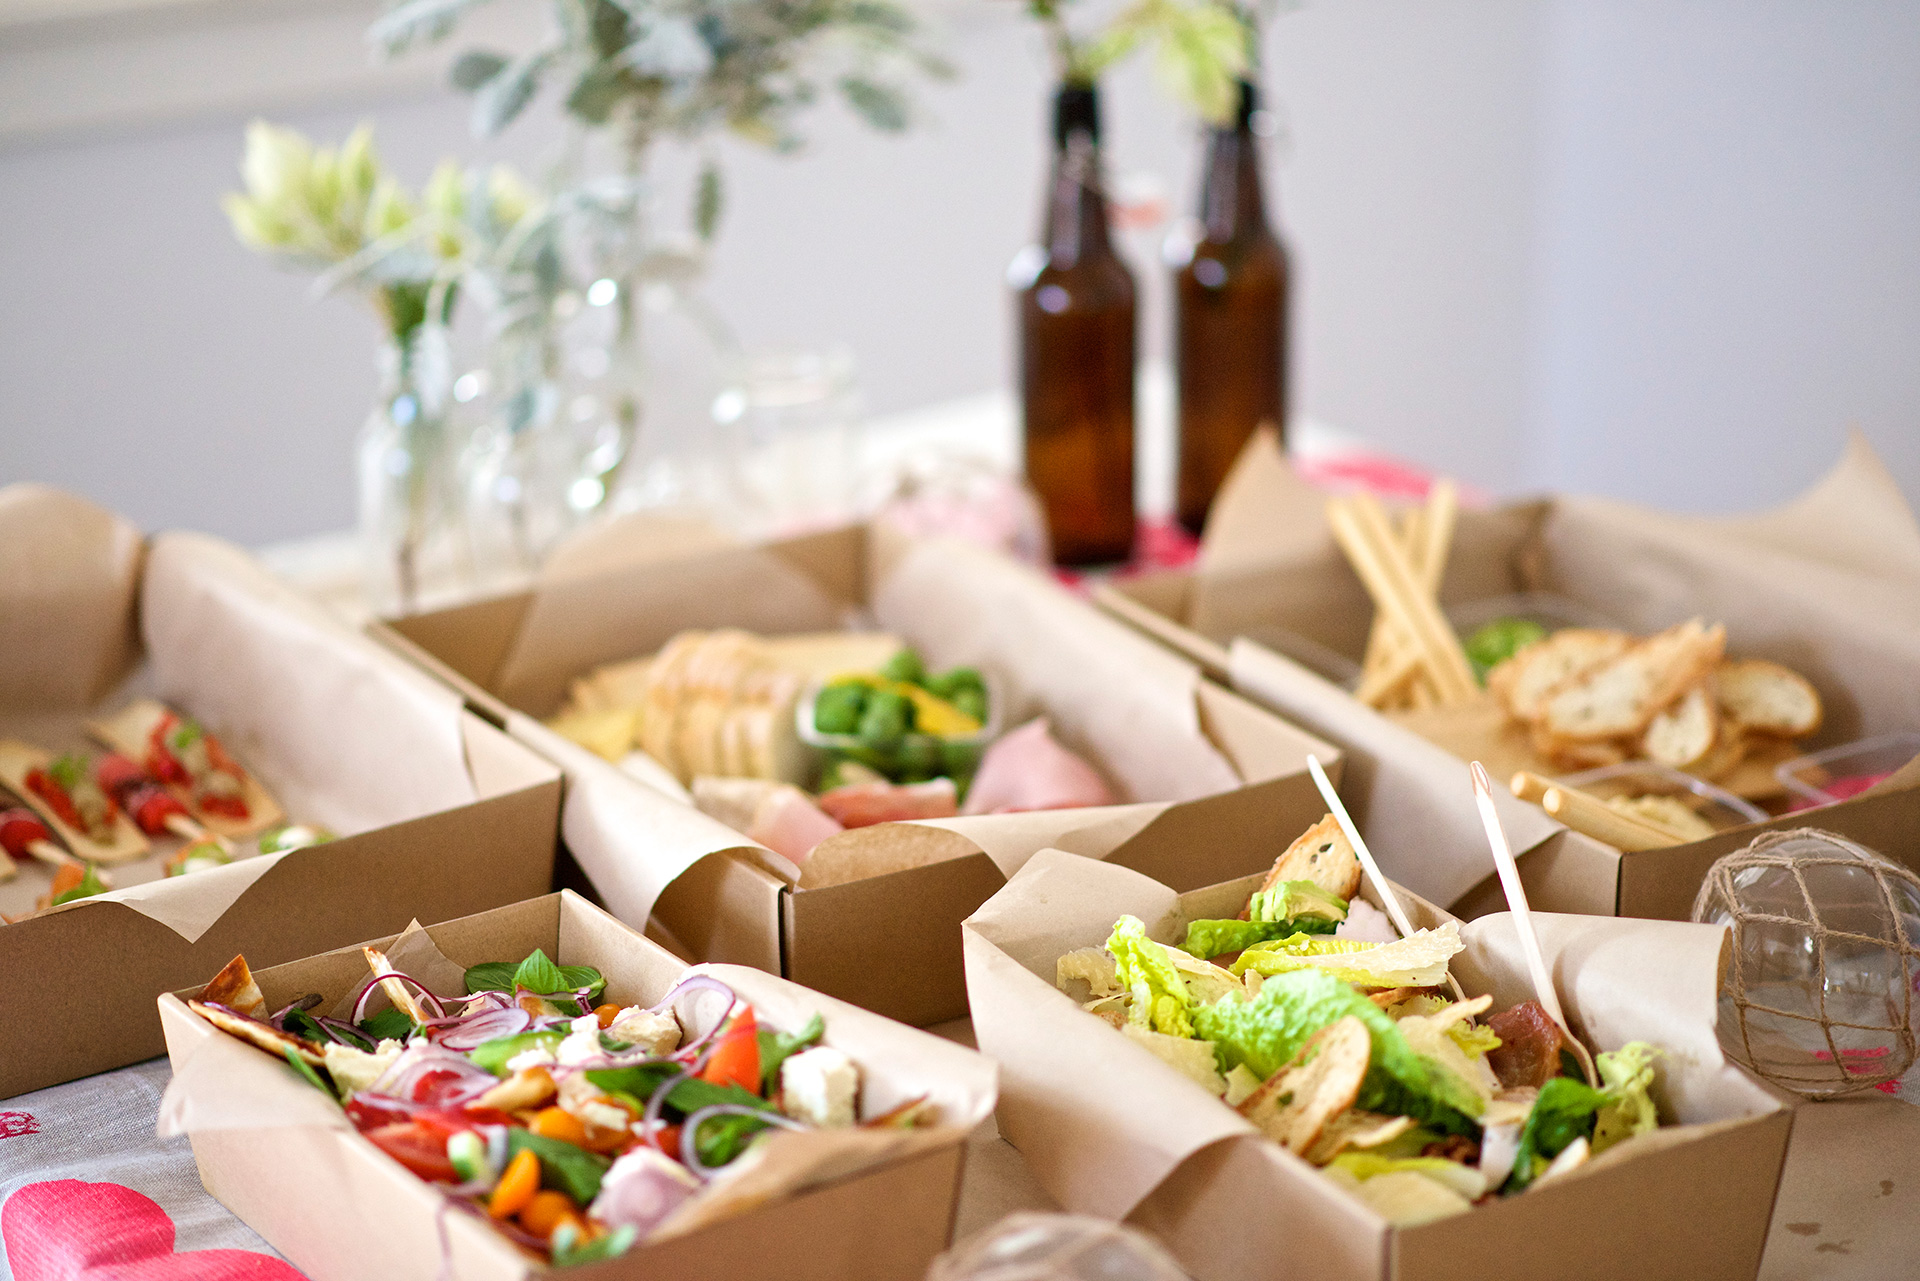 The Dropp gourmet food catering in Sydney